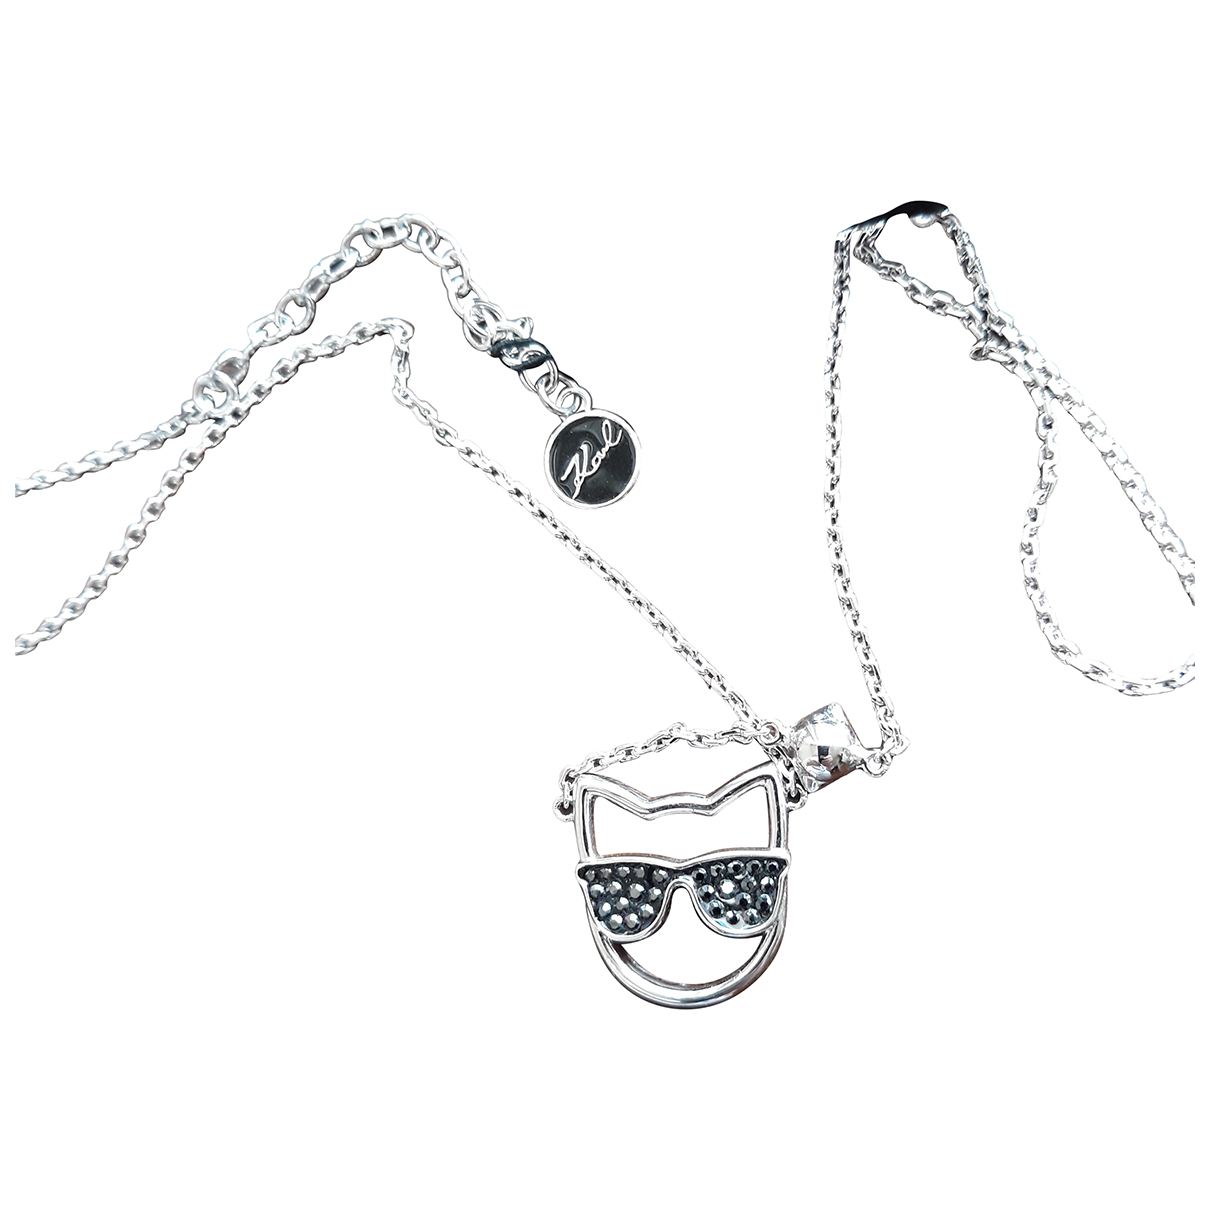 Karl \N Silver Metal necklace for Women \N